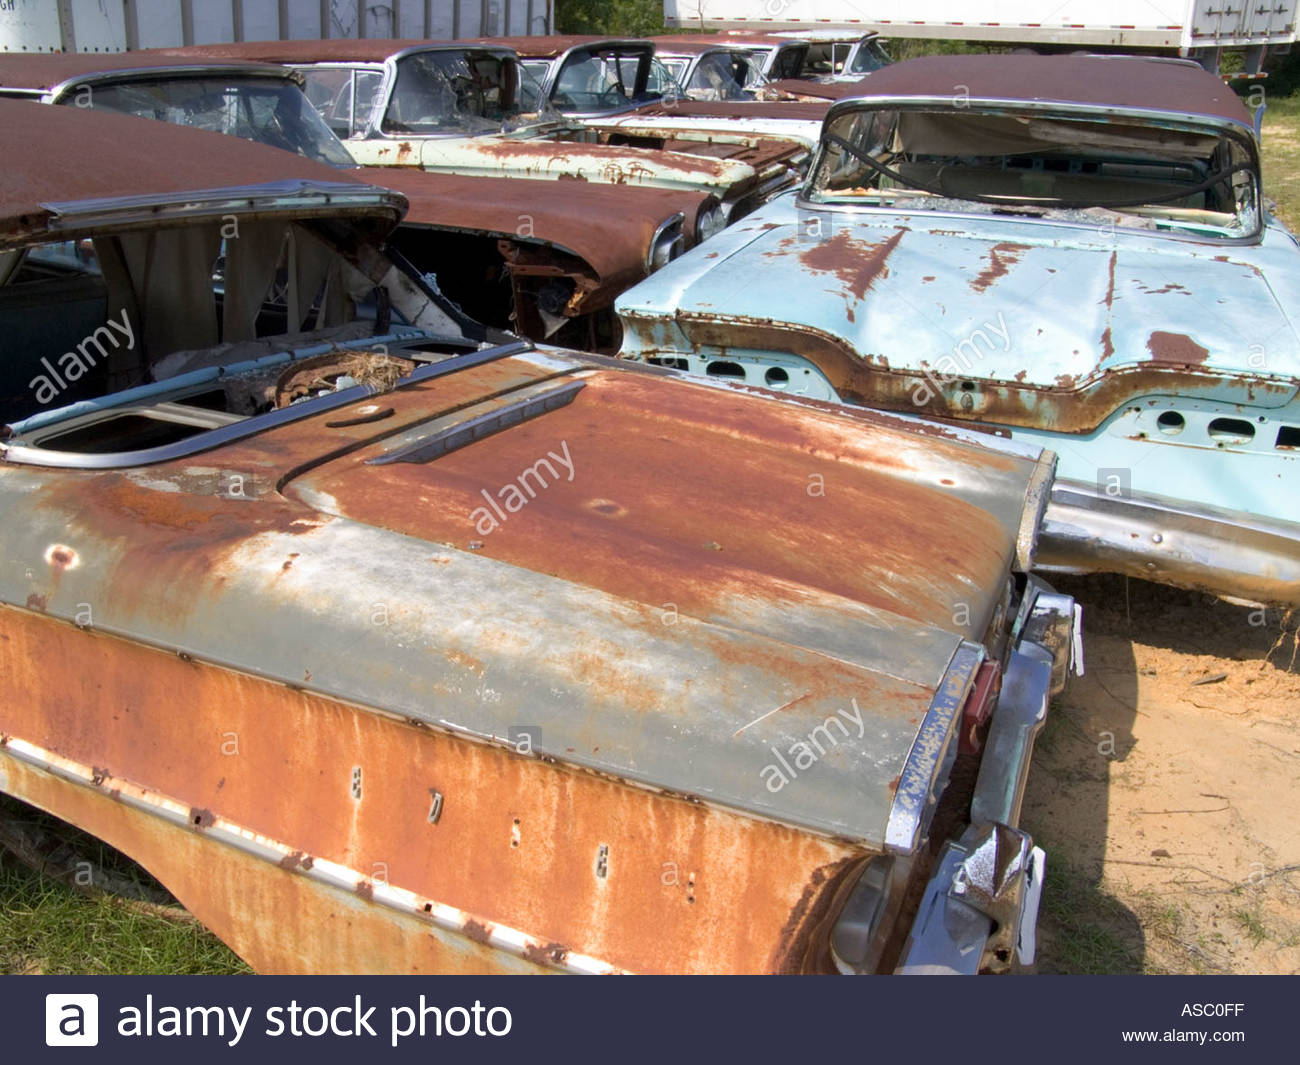 classic cars sitting in a junkyard Stock Photo, Royalty Free Image ...